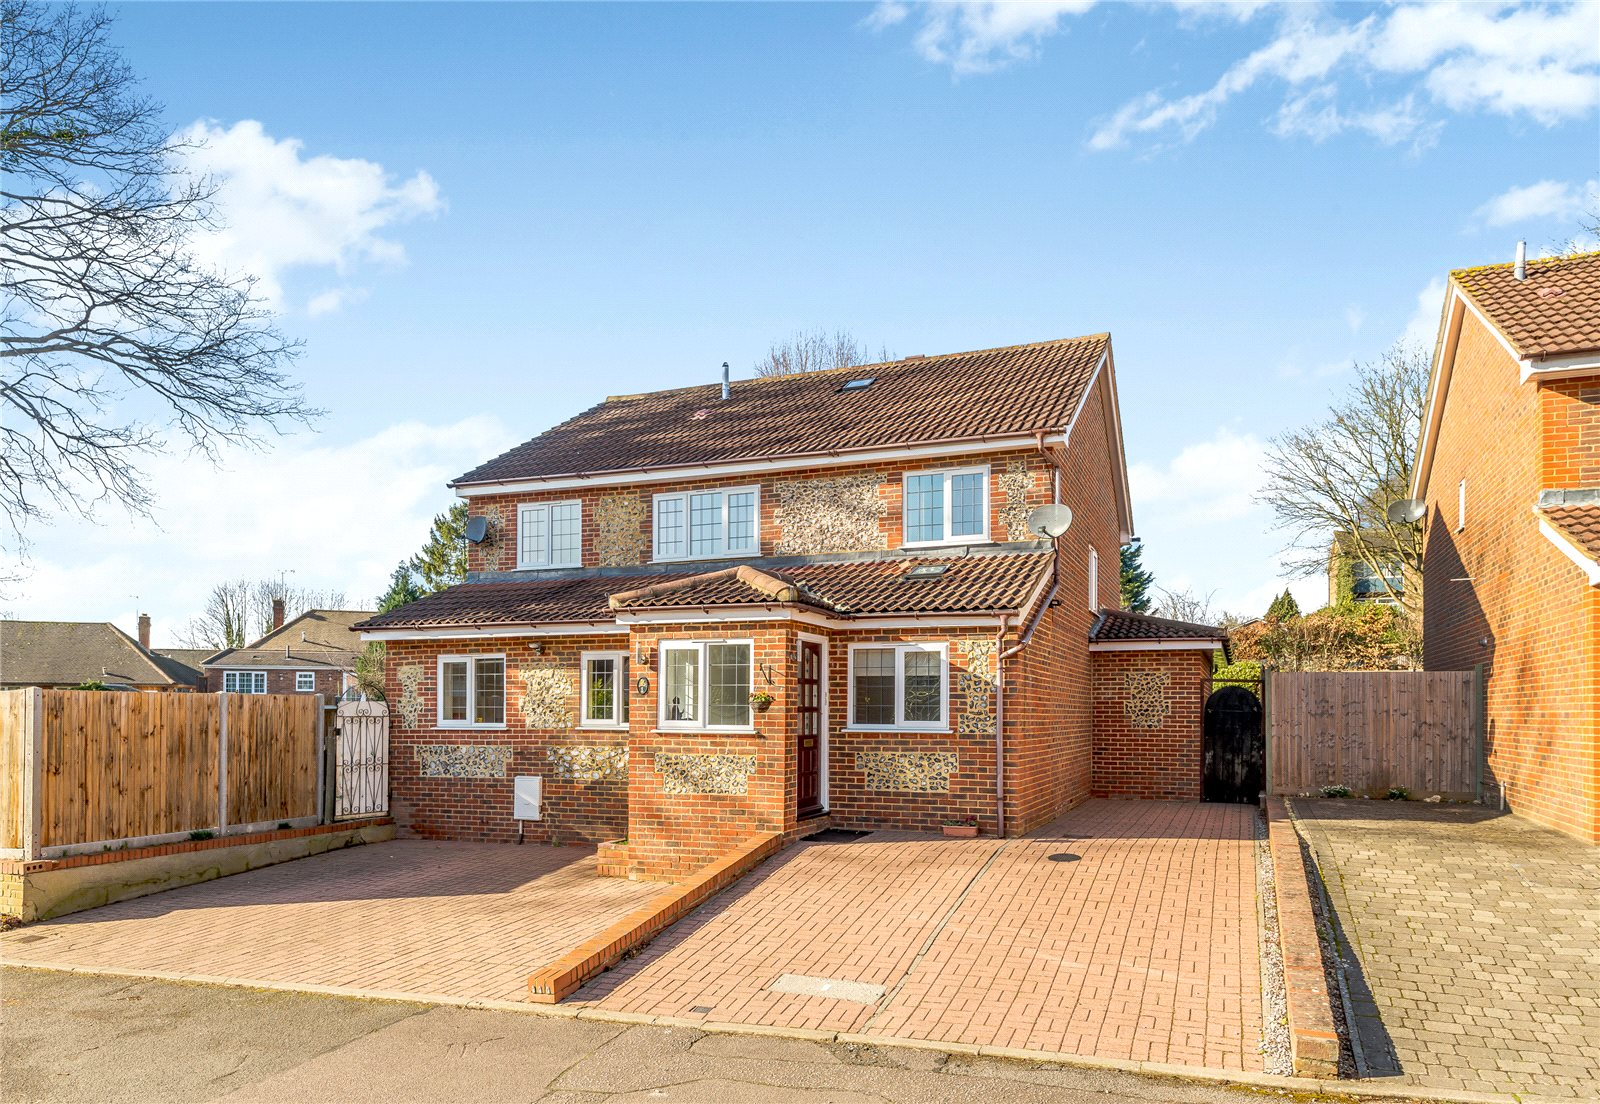 Single Family Home for Sale at Newland Close, St. Albans, Hertfordshire, AL1 St Albans, England